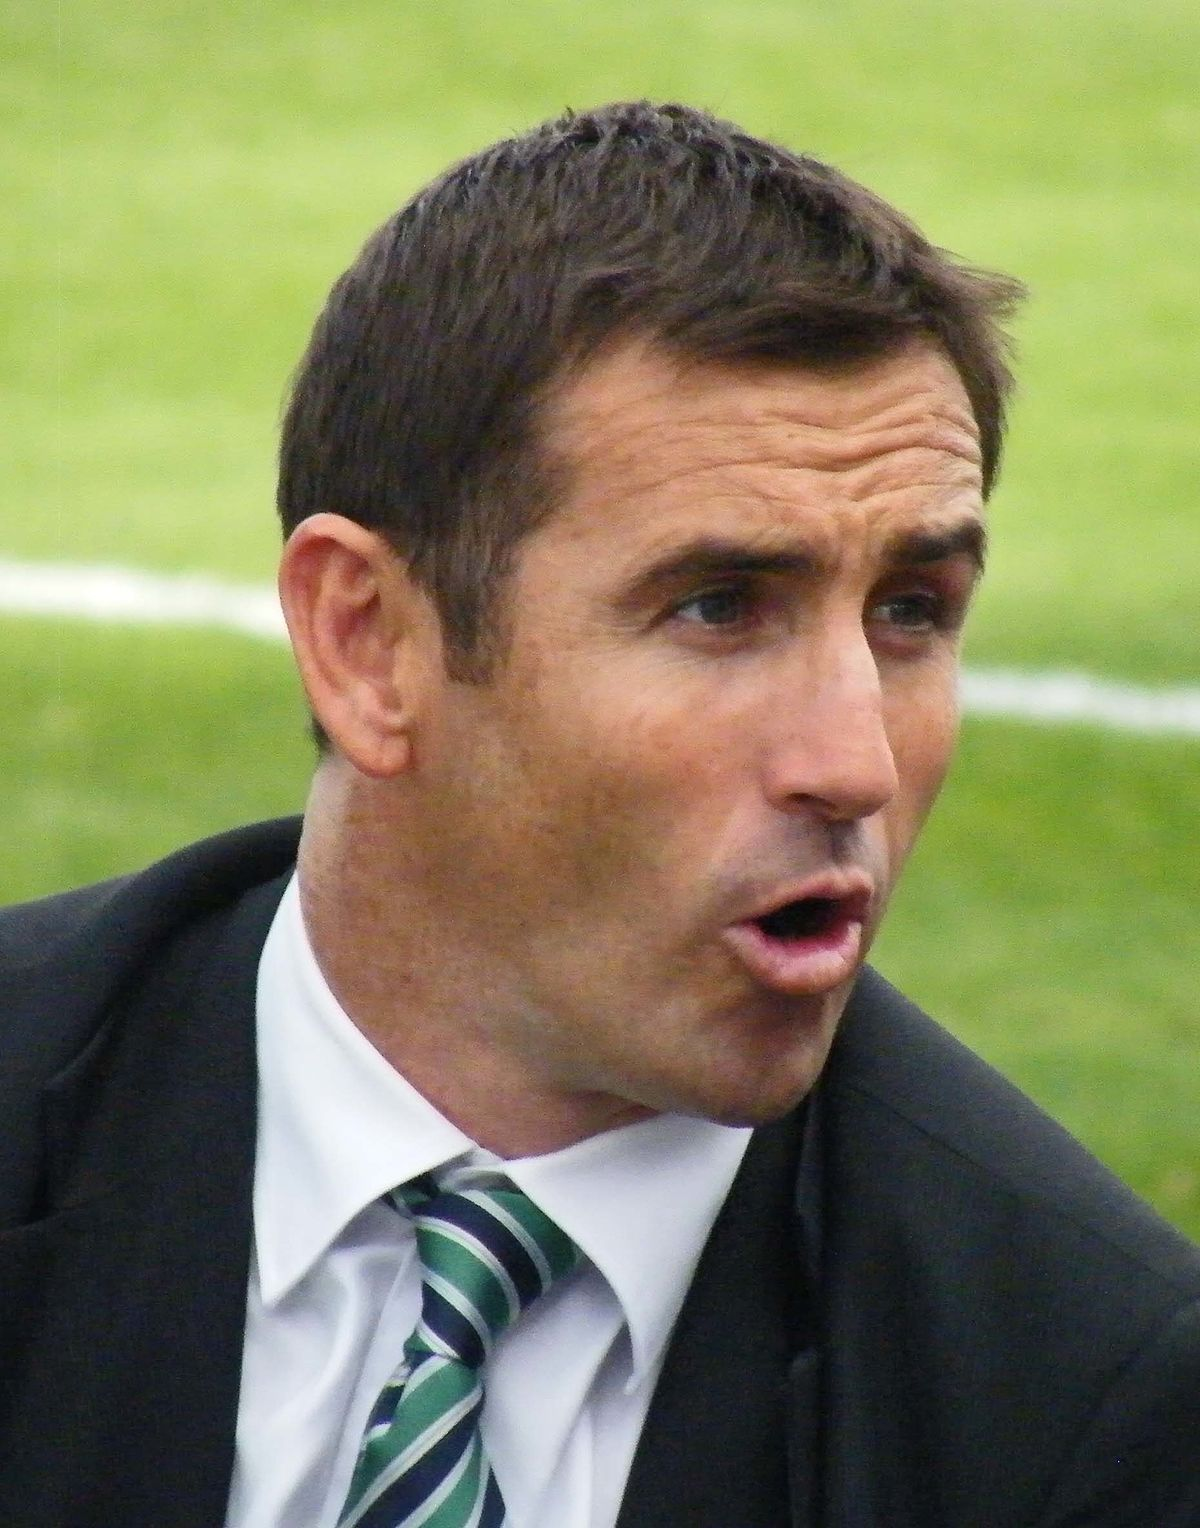 andrew johns - photo #1